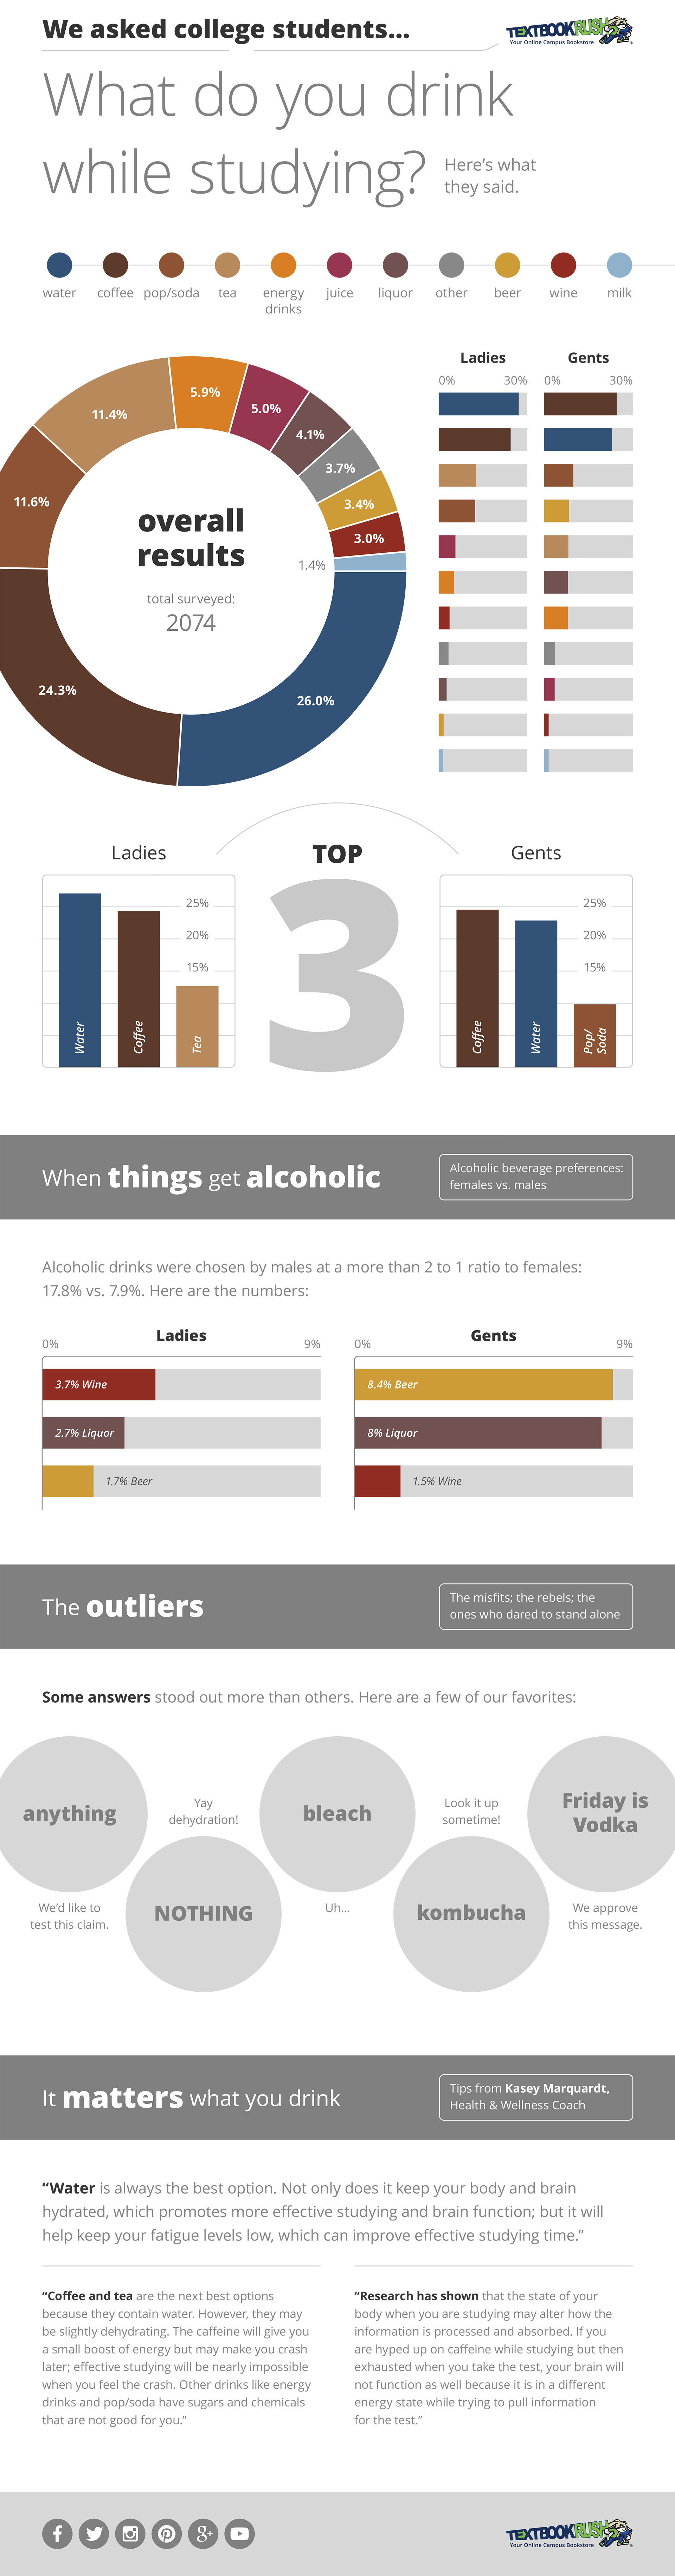 We asked college students... what do you drink while studying? Here's what they said.